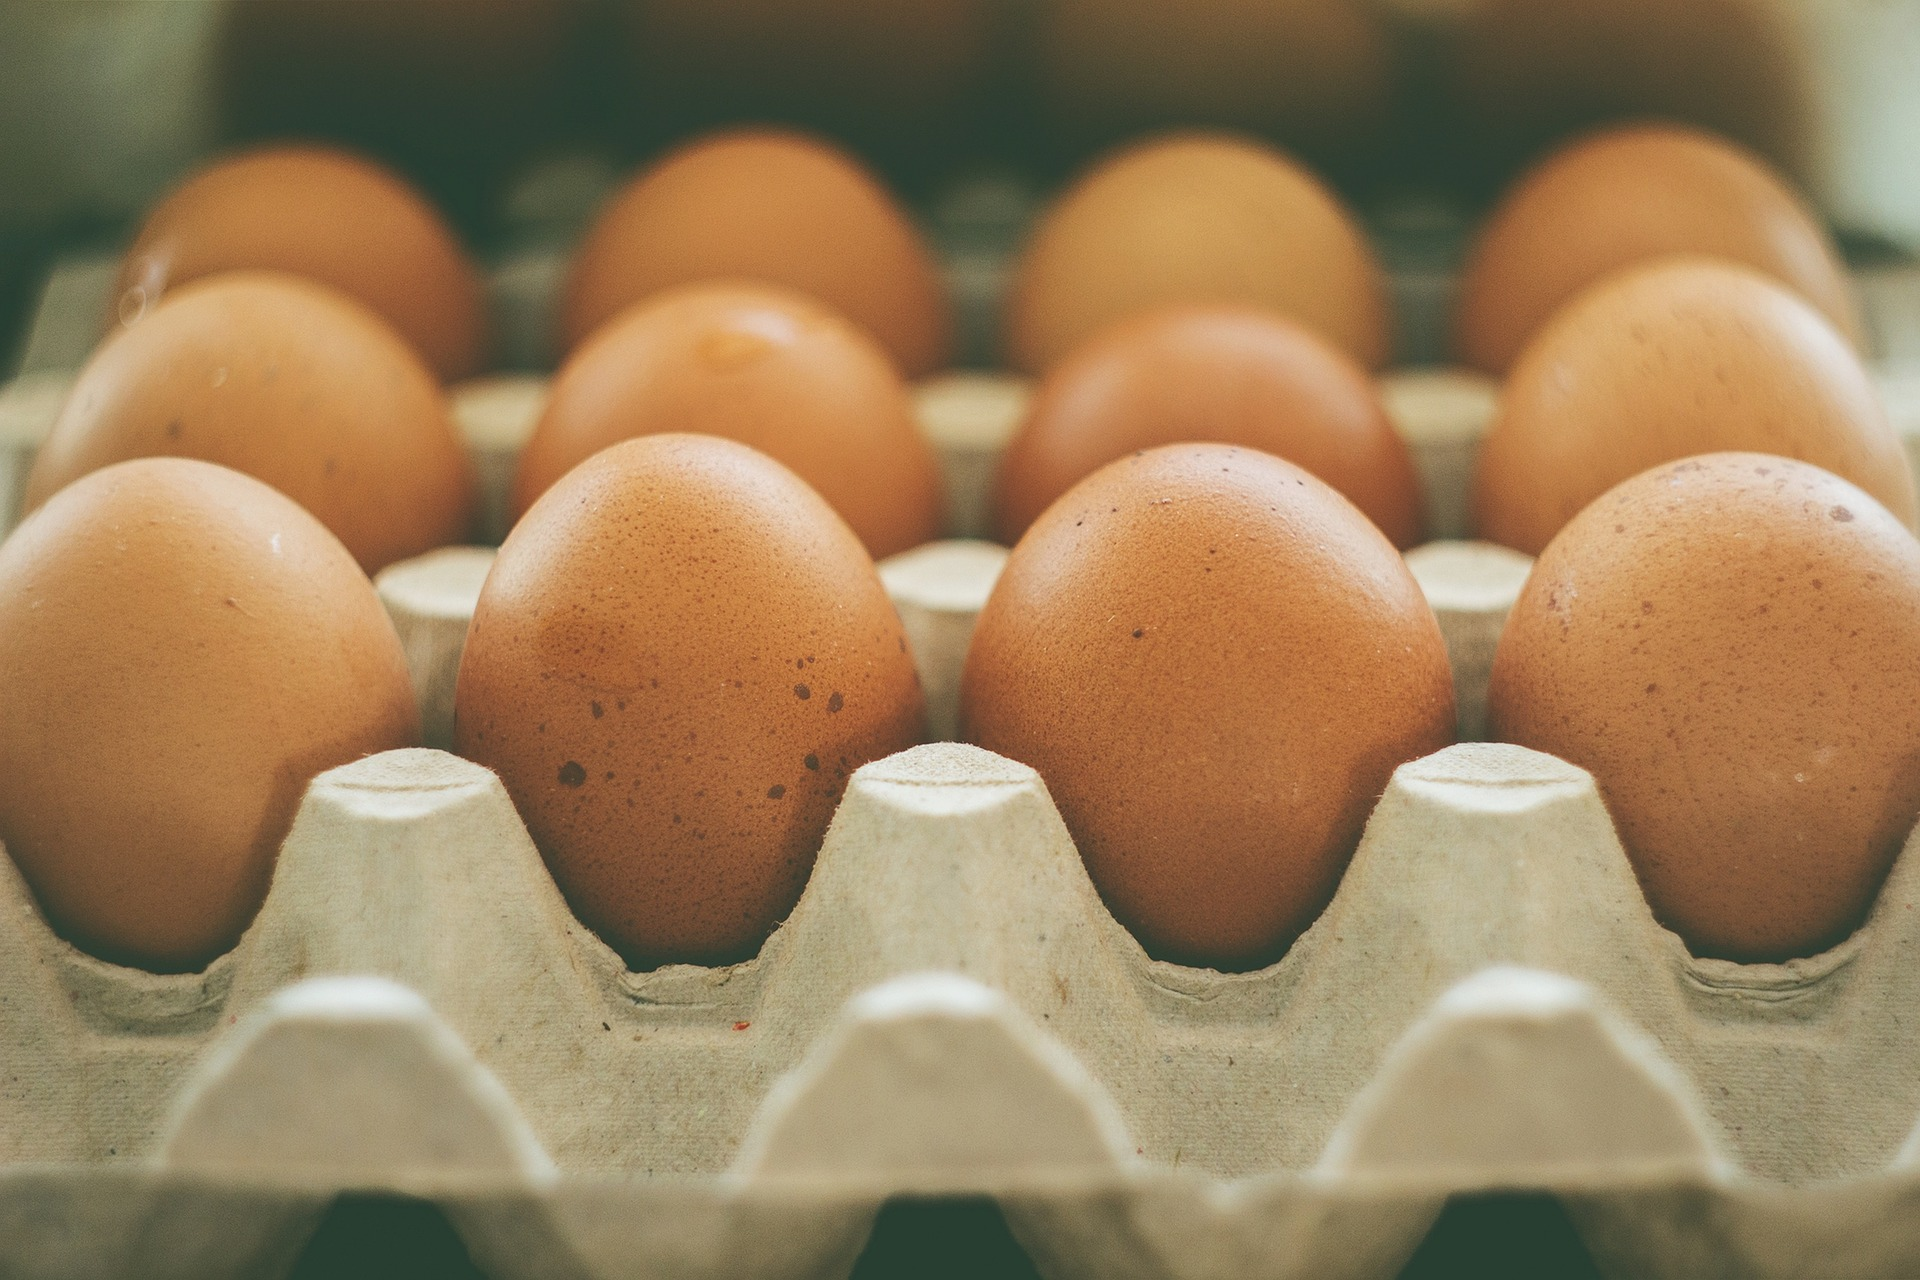 Animal-based high cholesterol eggs